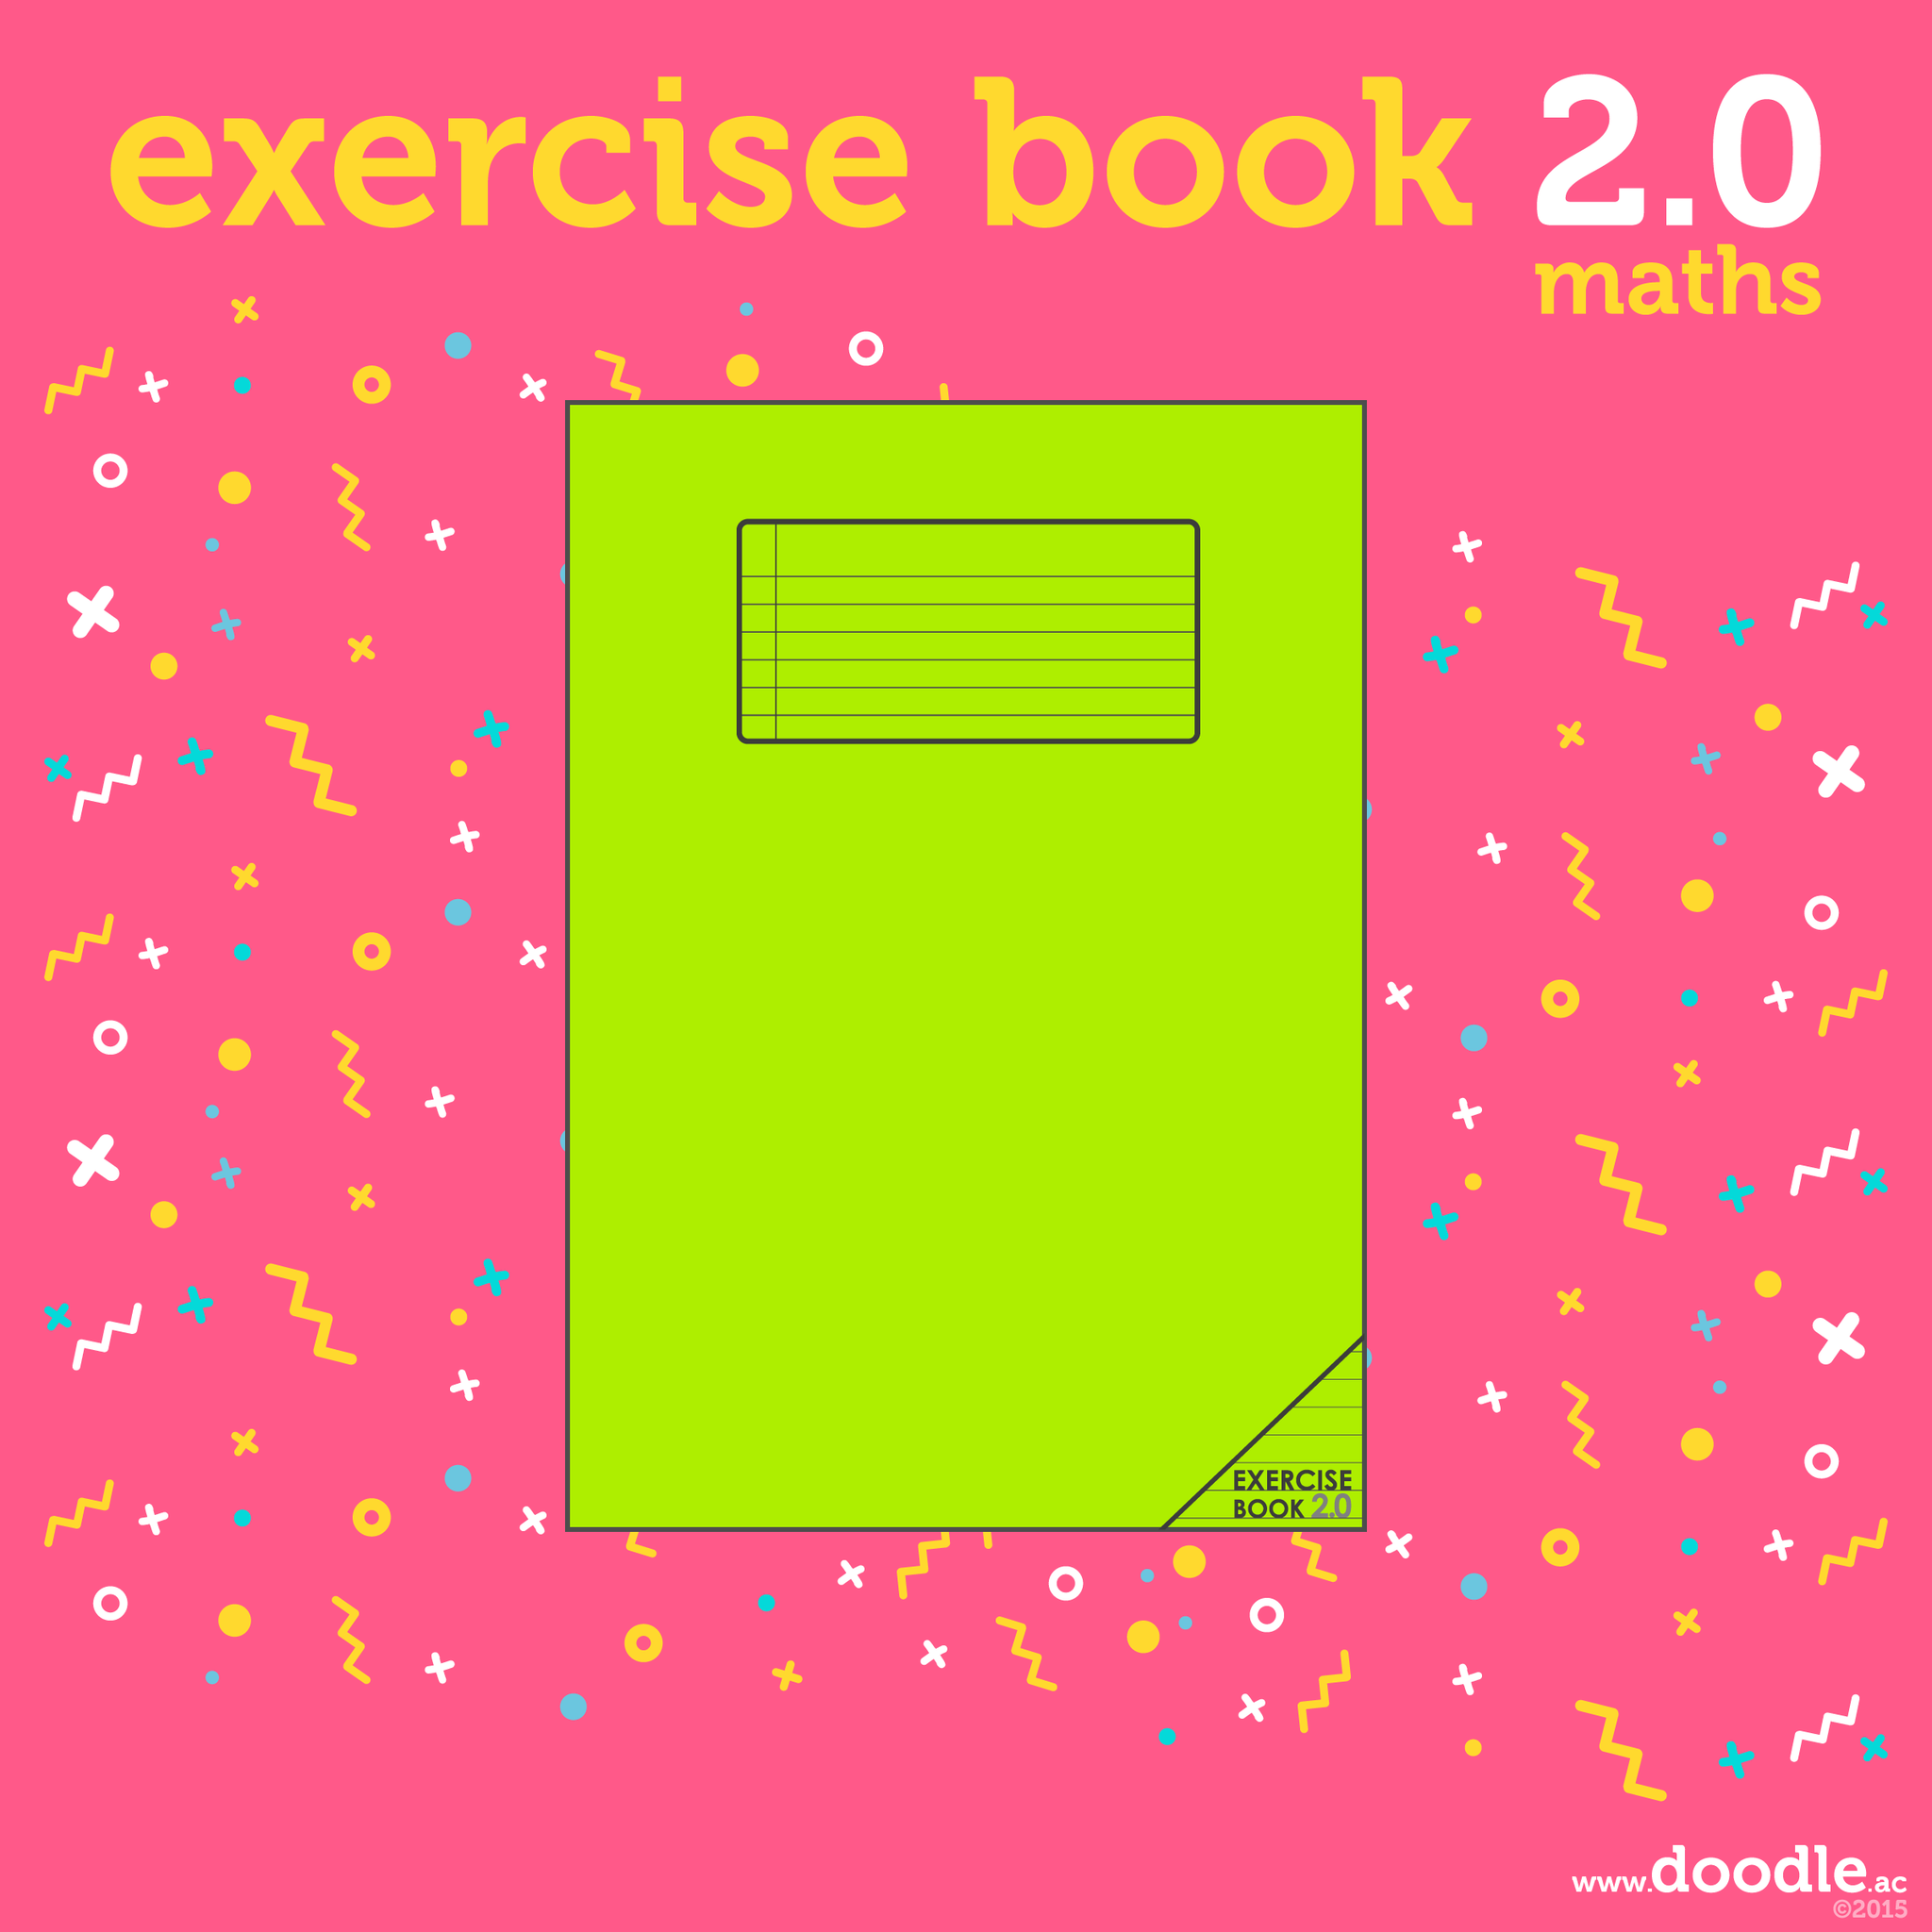 exercise book 2.0 (maths) - doodle education - 1